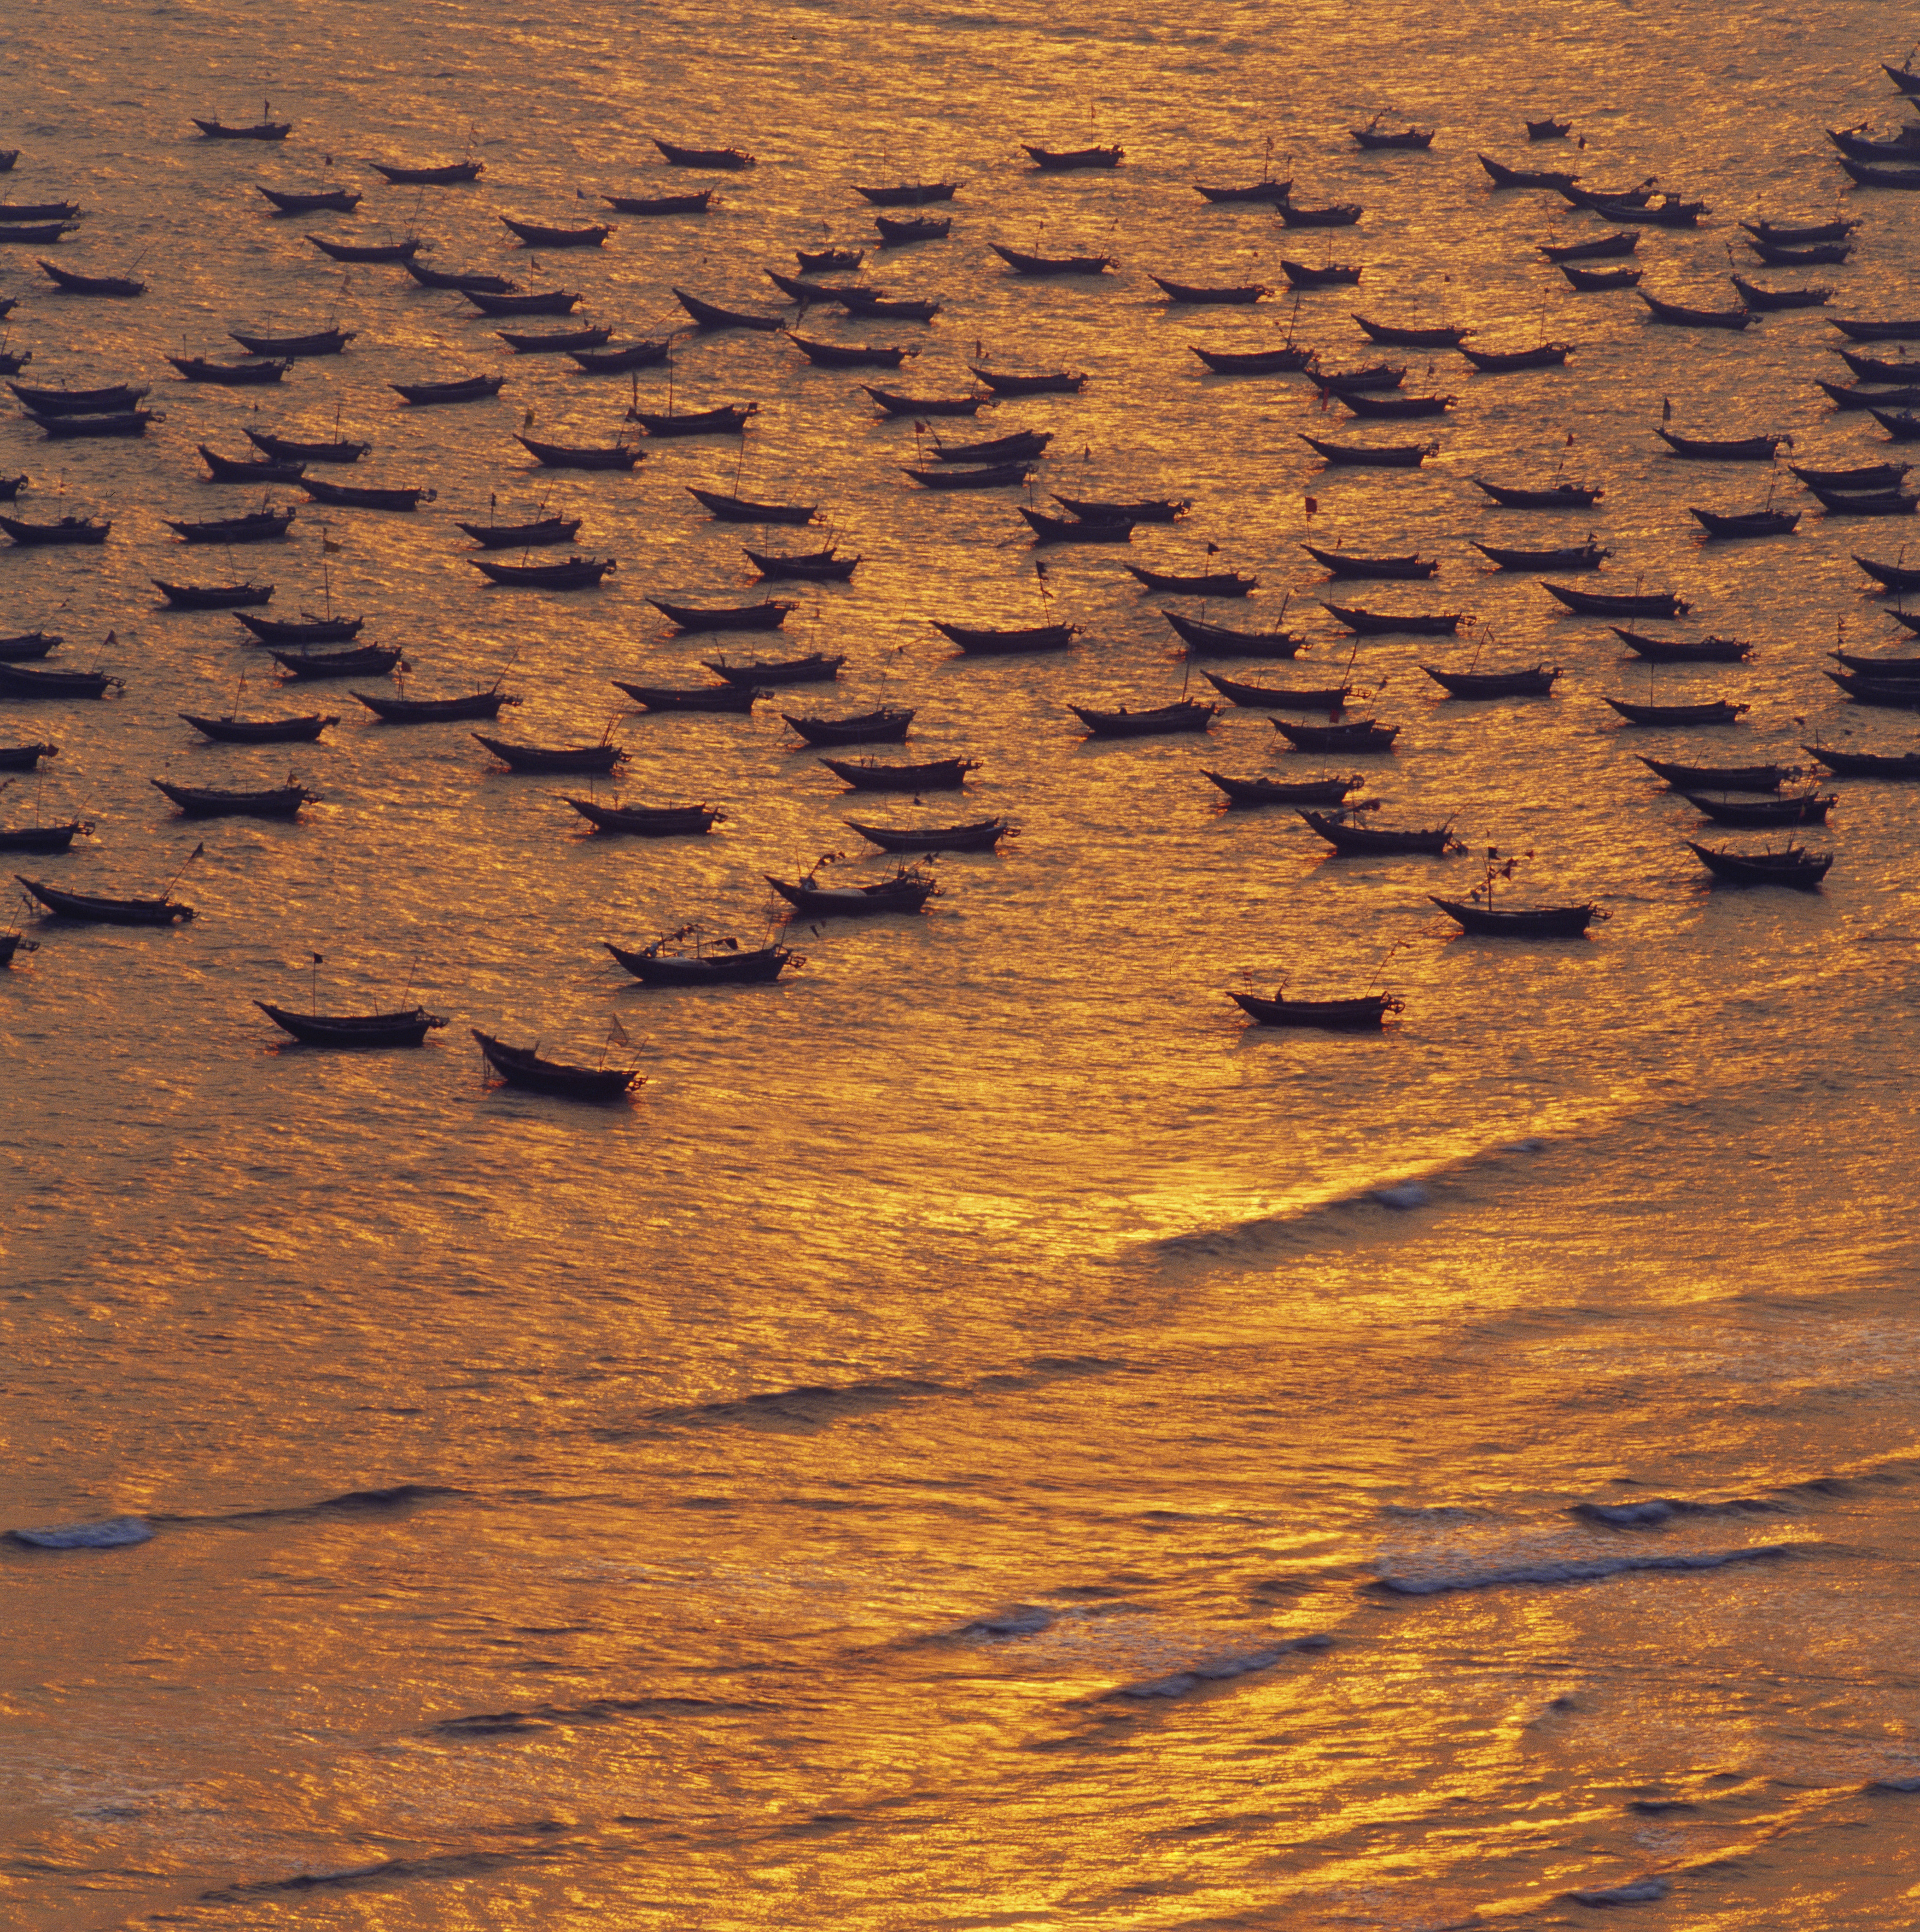 Hundreds of boats on the water at sunset, Shuidong Harbour, Diangbai County, Maoming City, Guangdong